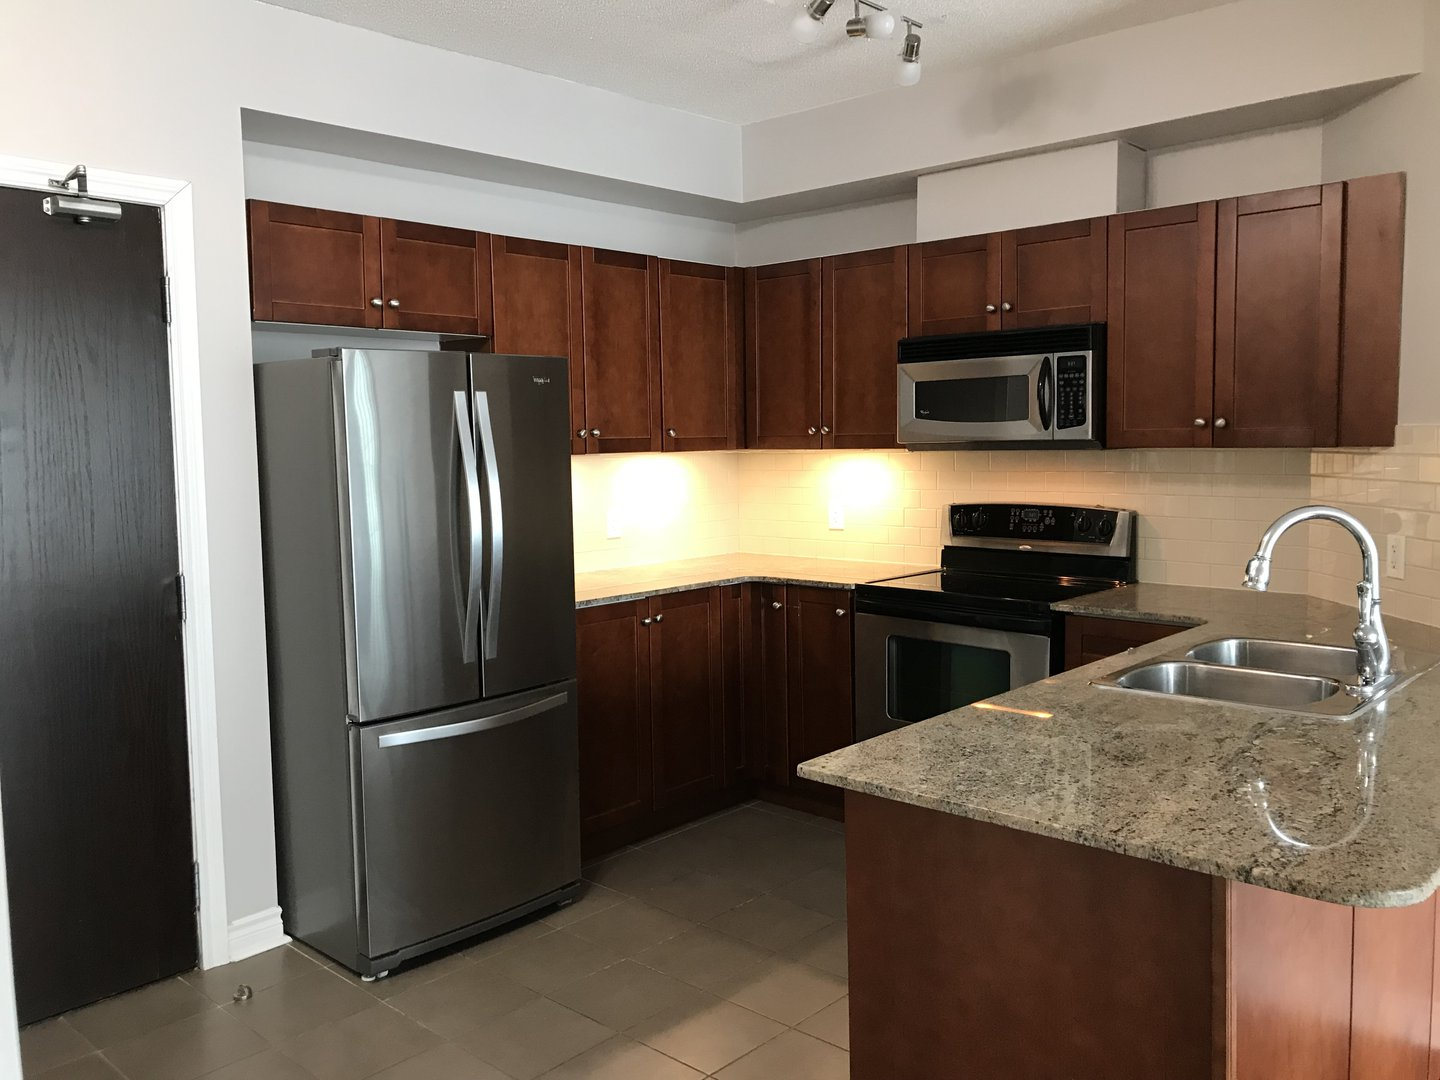 Apartment for rent at 3504 Hurontario St, Mississauga, ON.